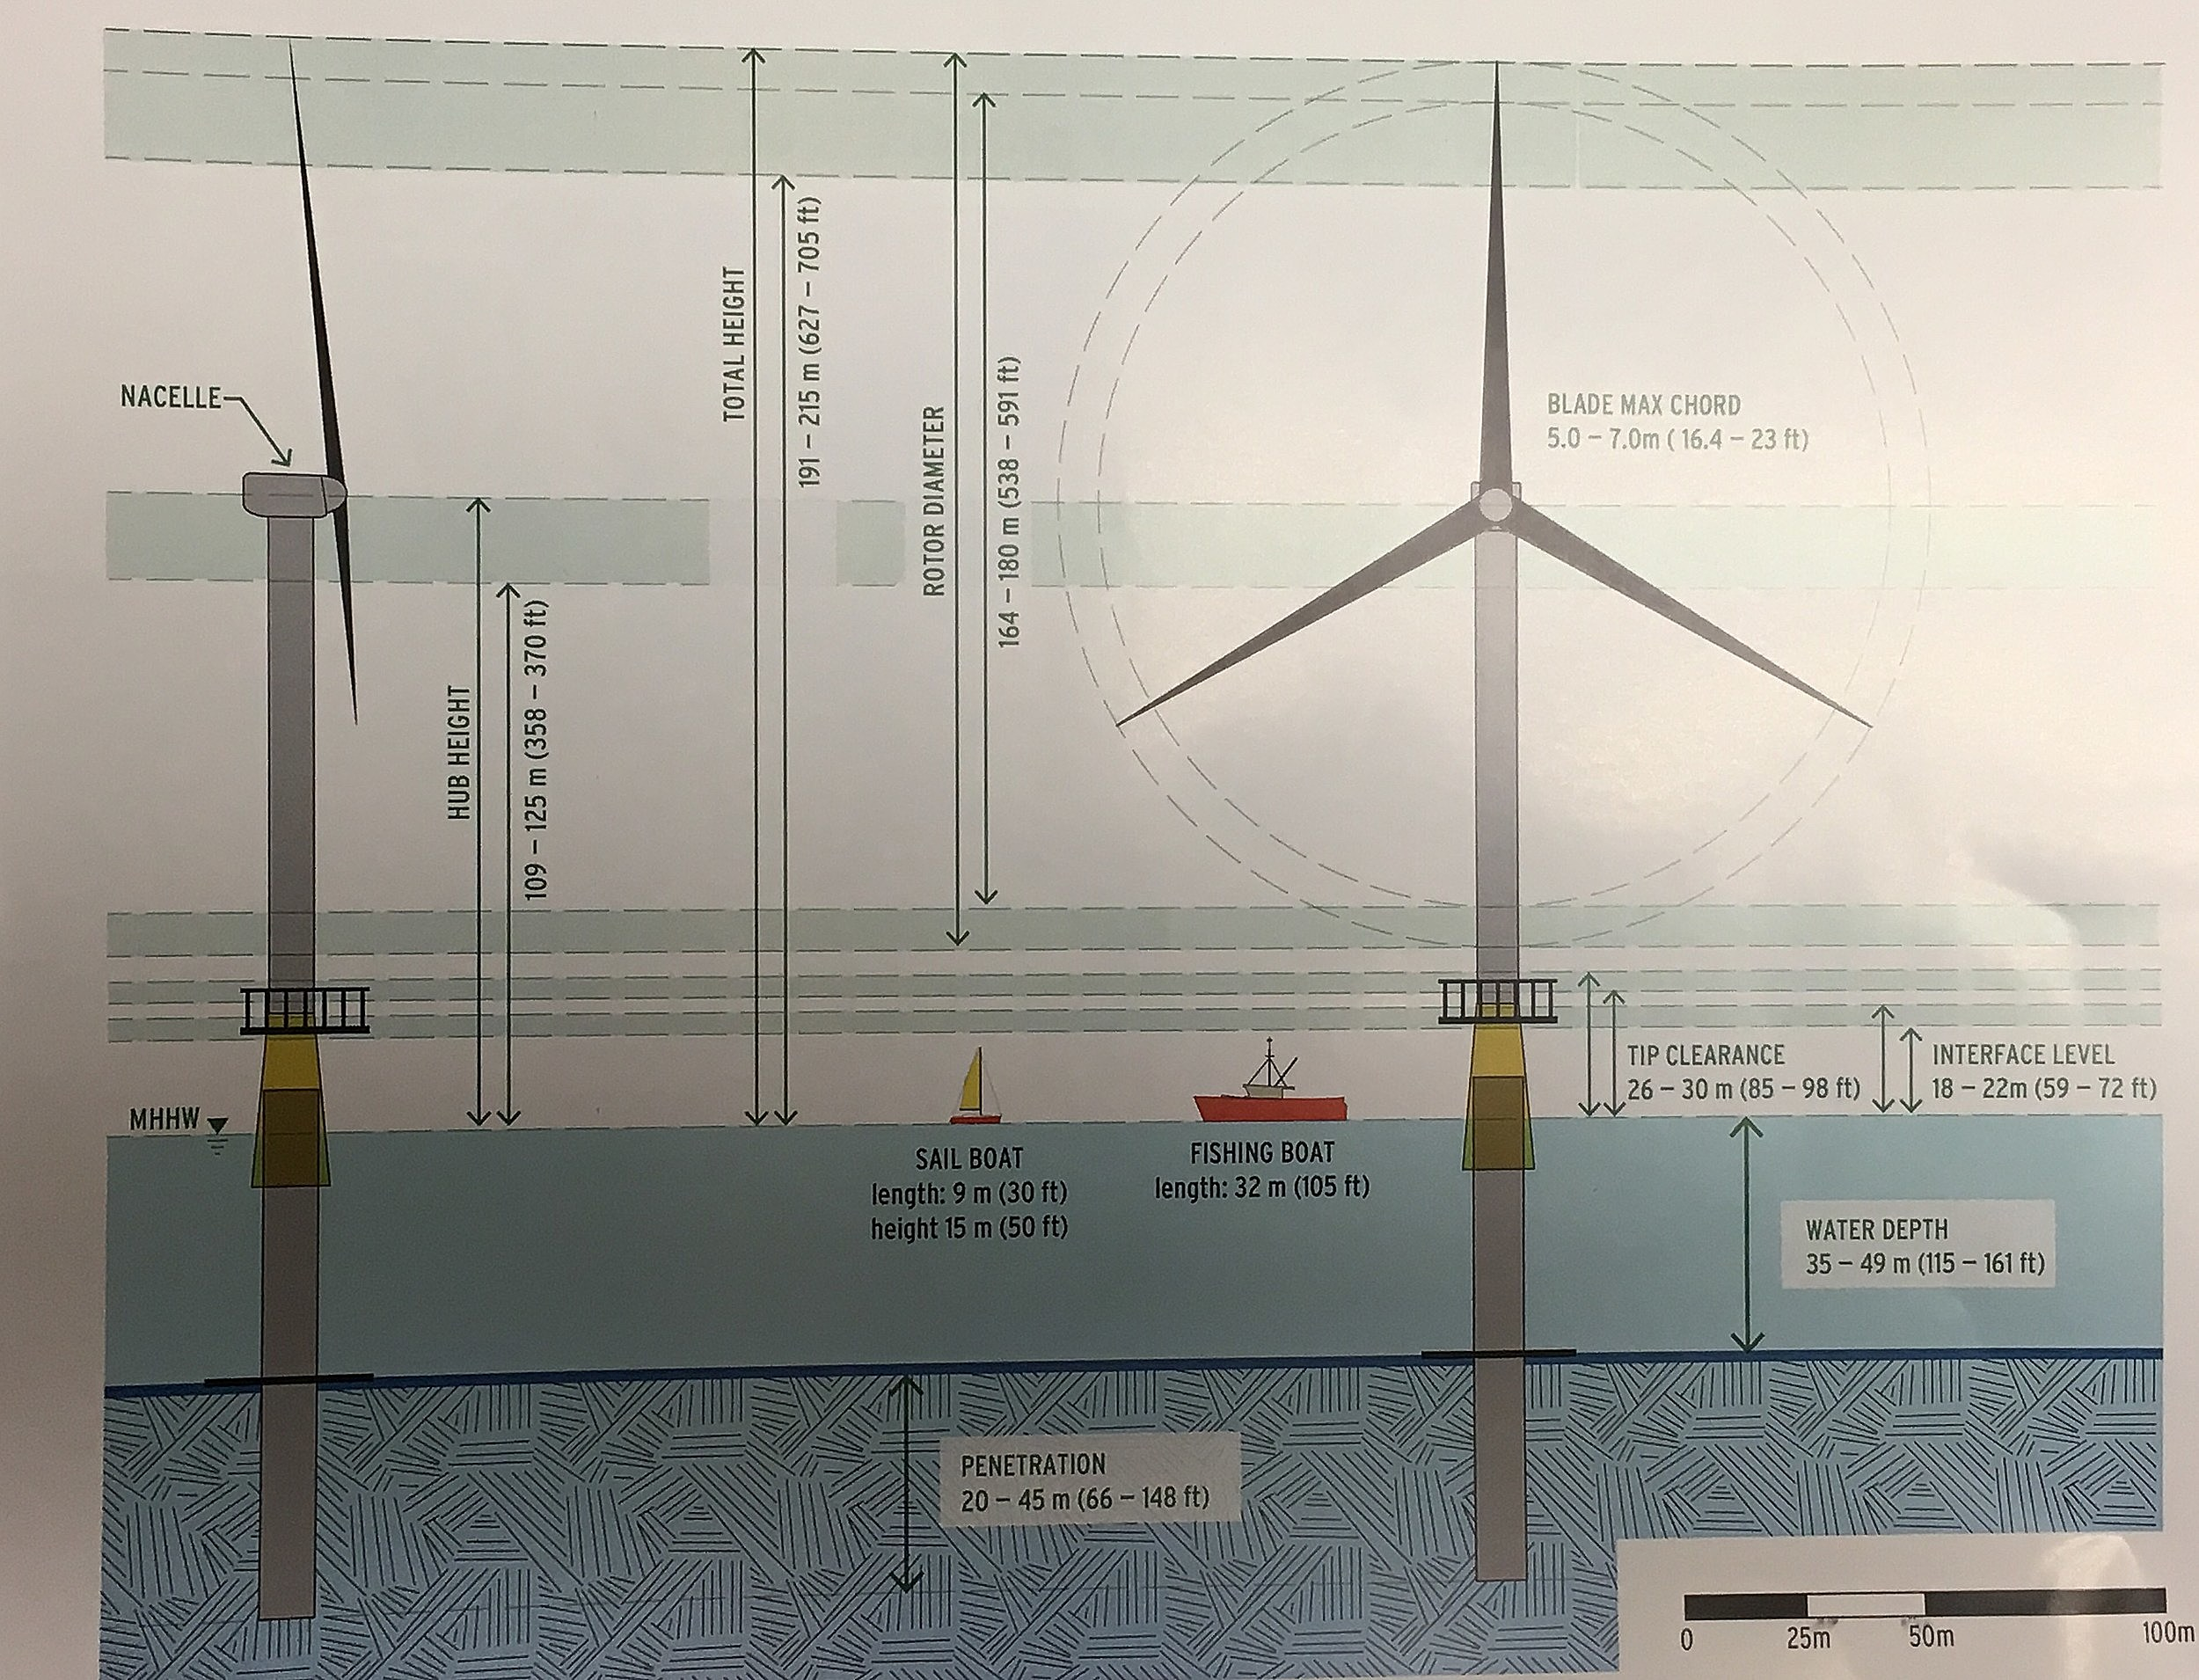 Vineyard Wind Contracts Approved by DPU